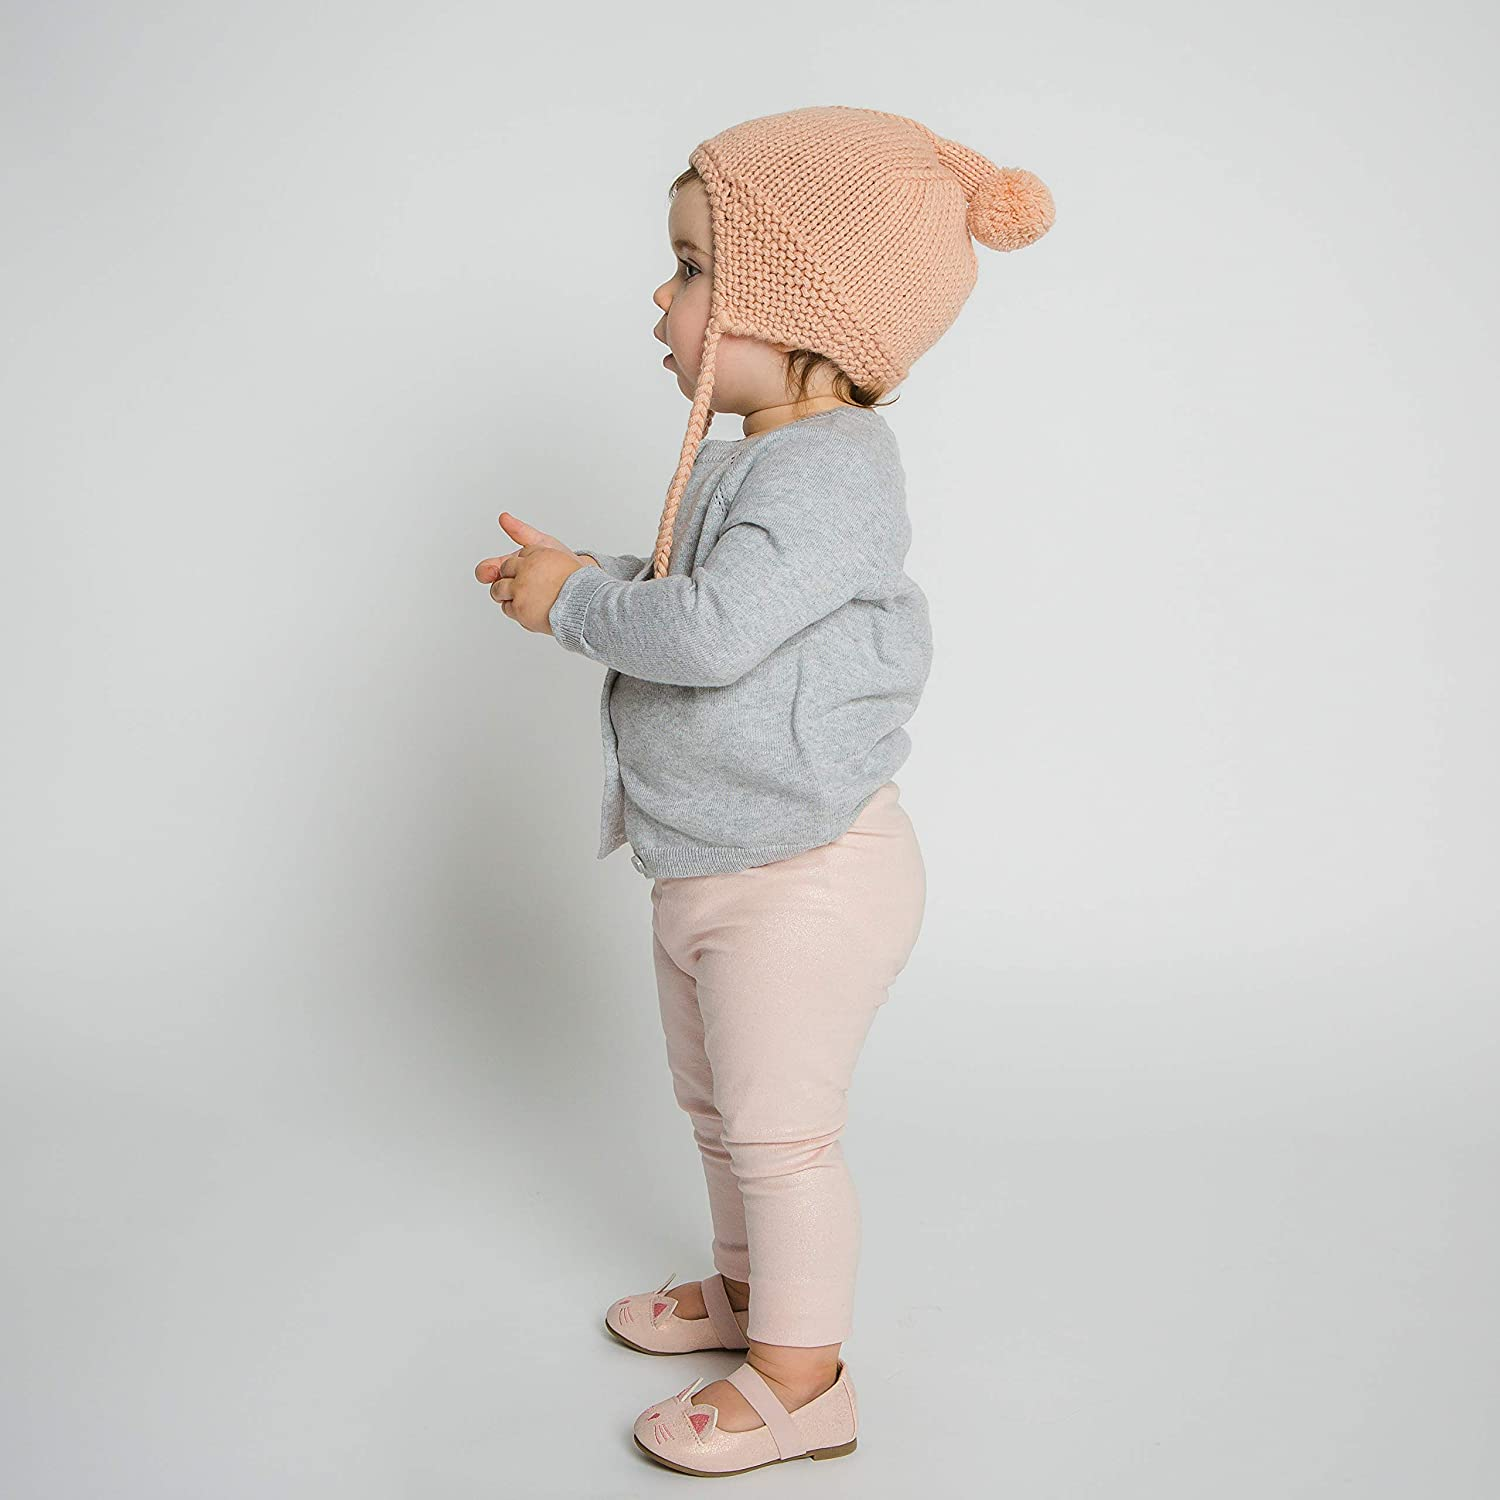 Caraz Bonnet Hat 2T-6T Hand-Knit 100/% Organic Alpaca Wool Hypoallergenic The Perfect and Eco-Friendly Way to Keep Your Baby and Toddler Cozy and Comfortable Soft by Surhilo Quality Blush